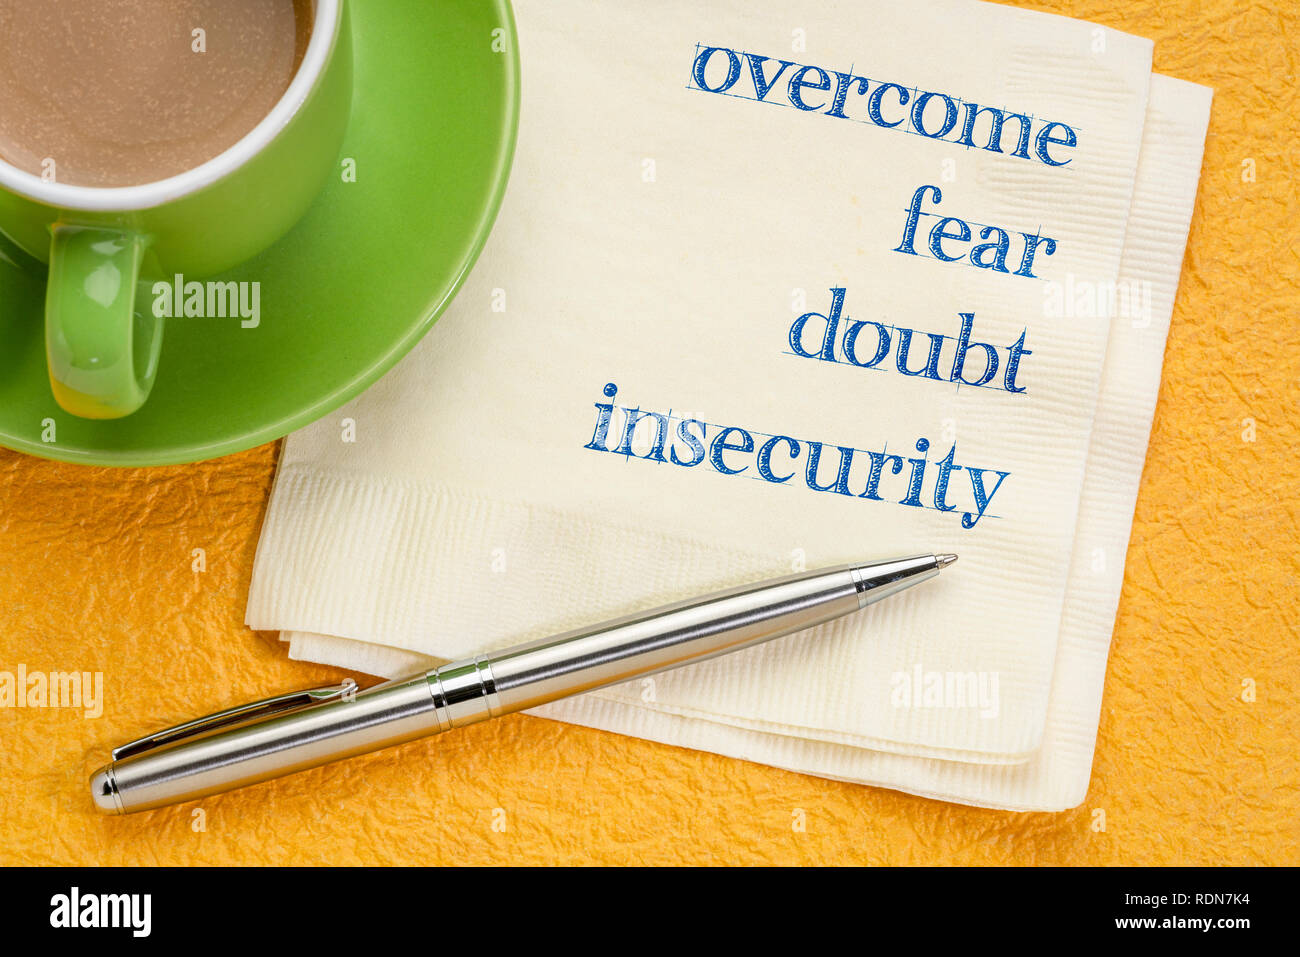 overcome fear, doubt, insecurity - handwriting on a napkin with a cup of coffee - Stock Image